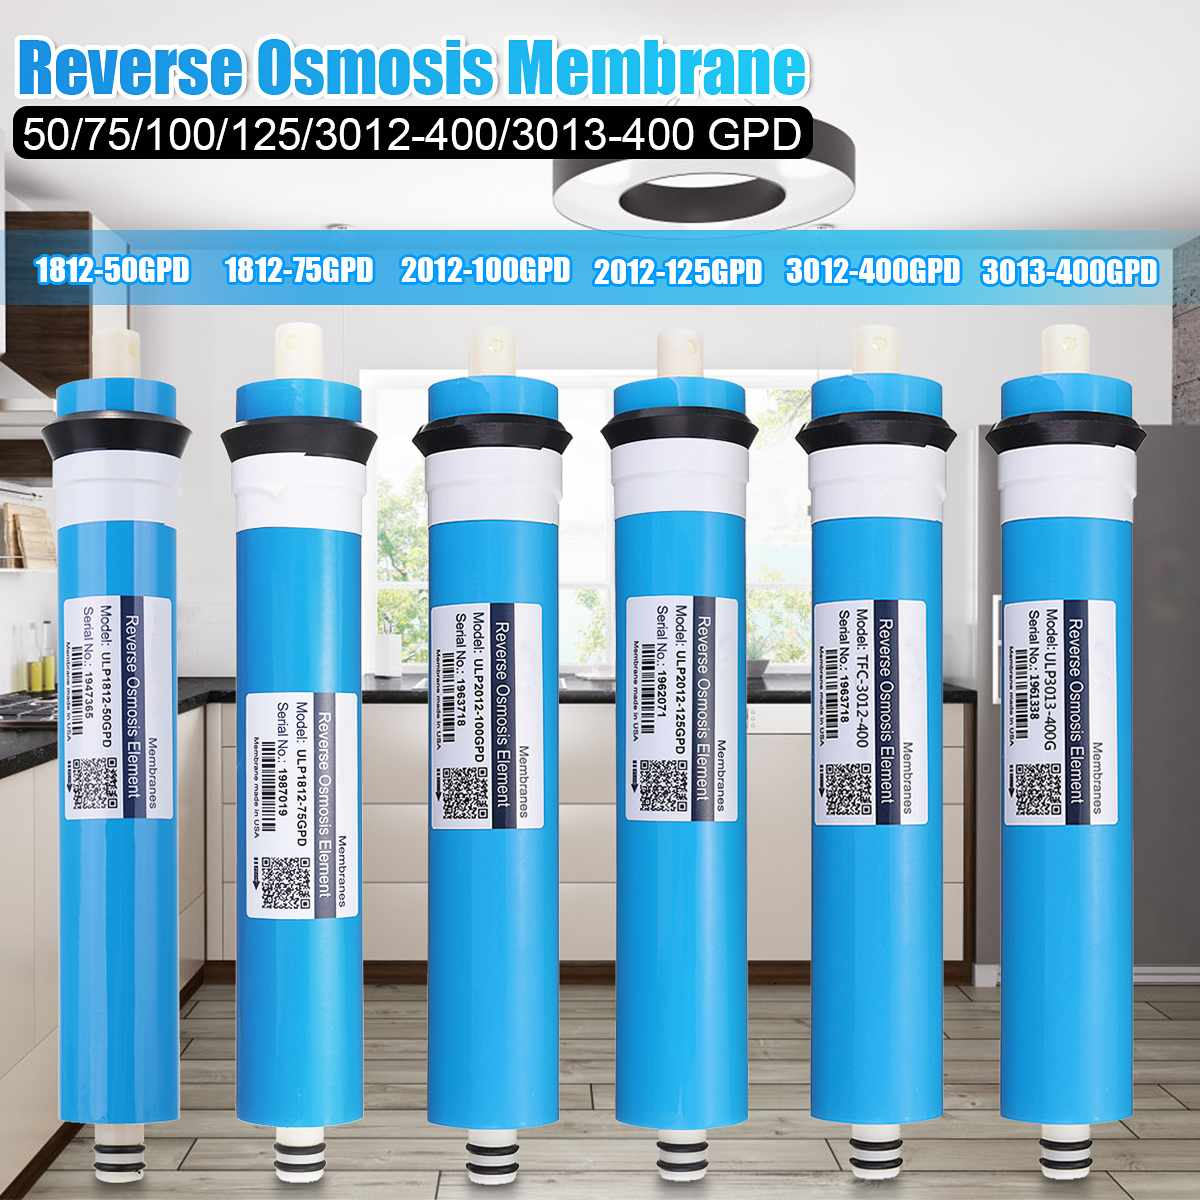 50/75/100/125/400GPD Reverse Osmosis RO Membrane Water Filter Replacement RO Water System Filter Water Drinking Purifier